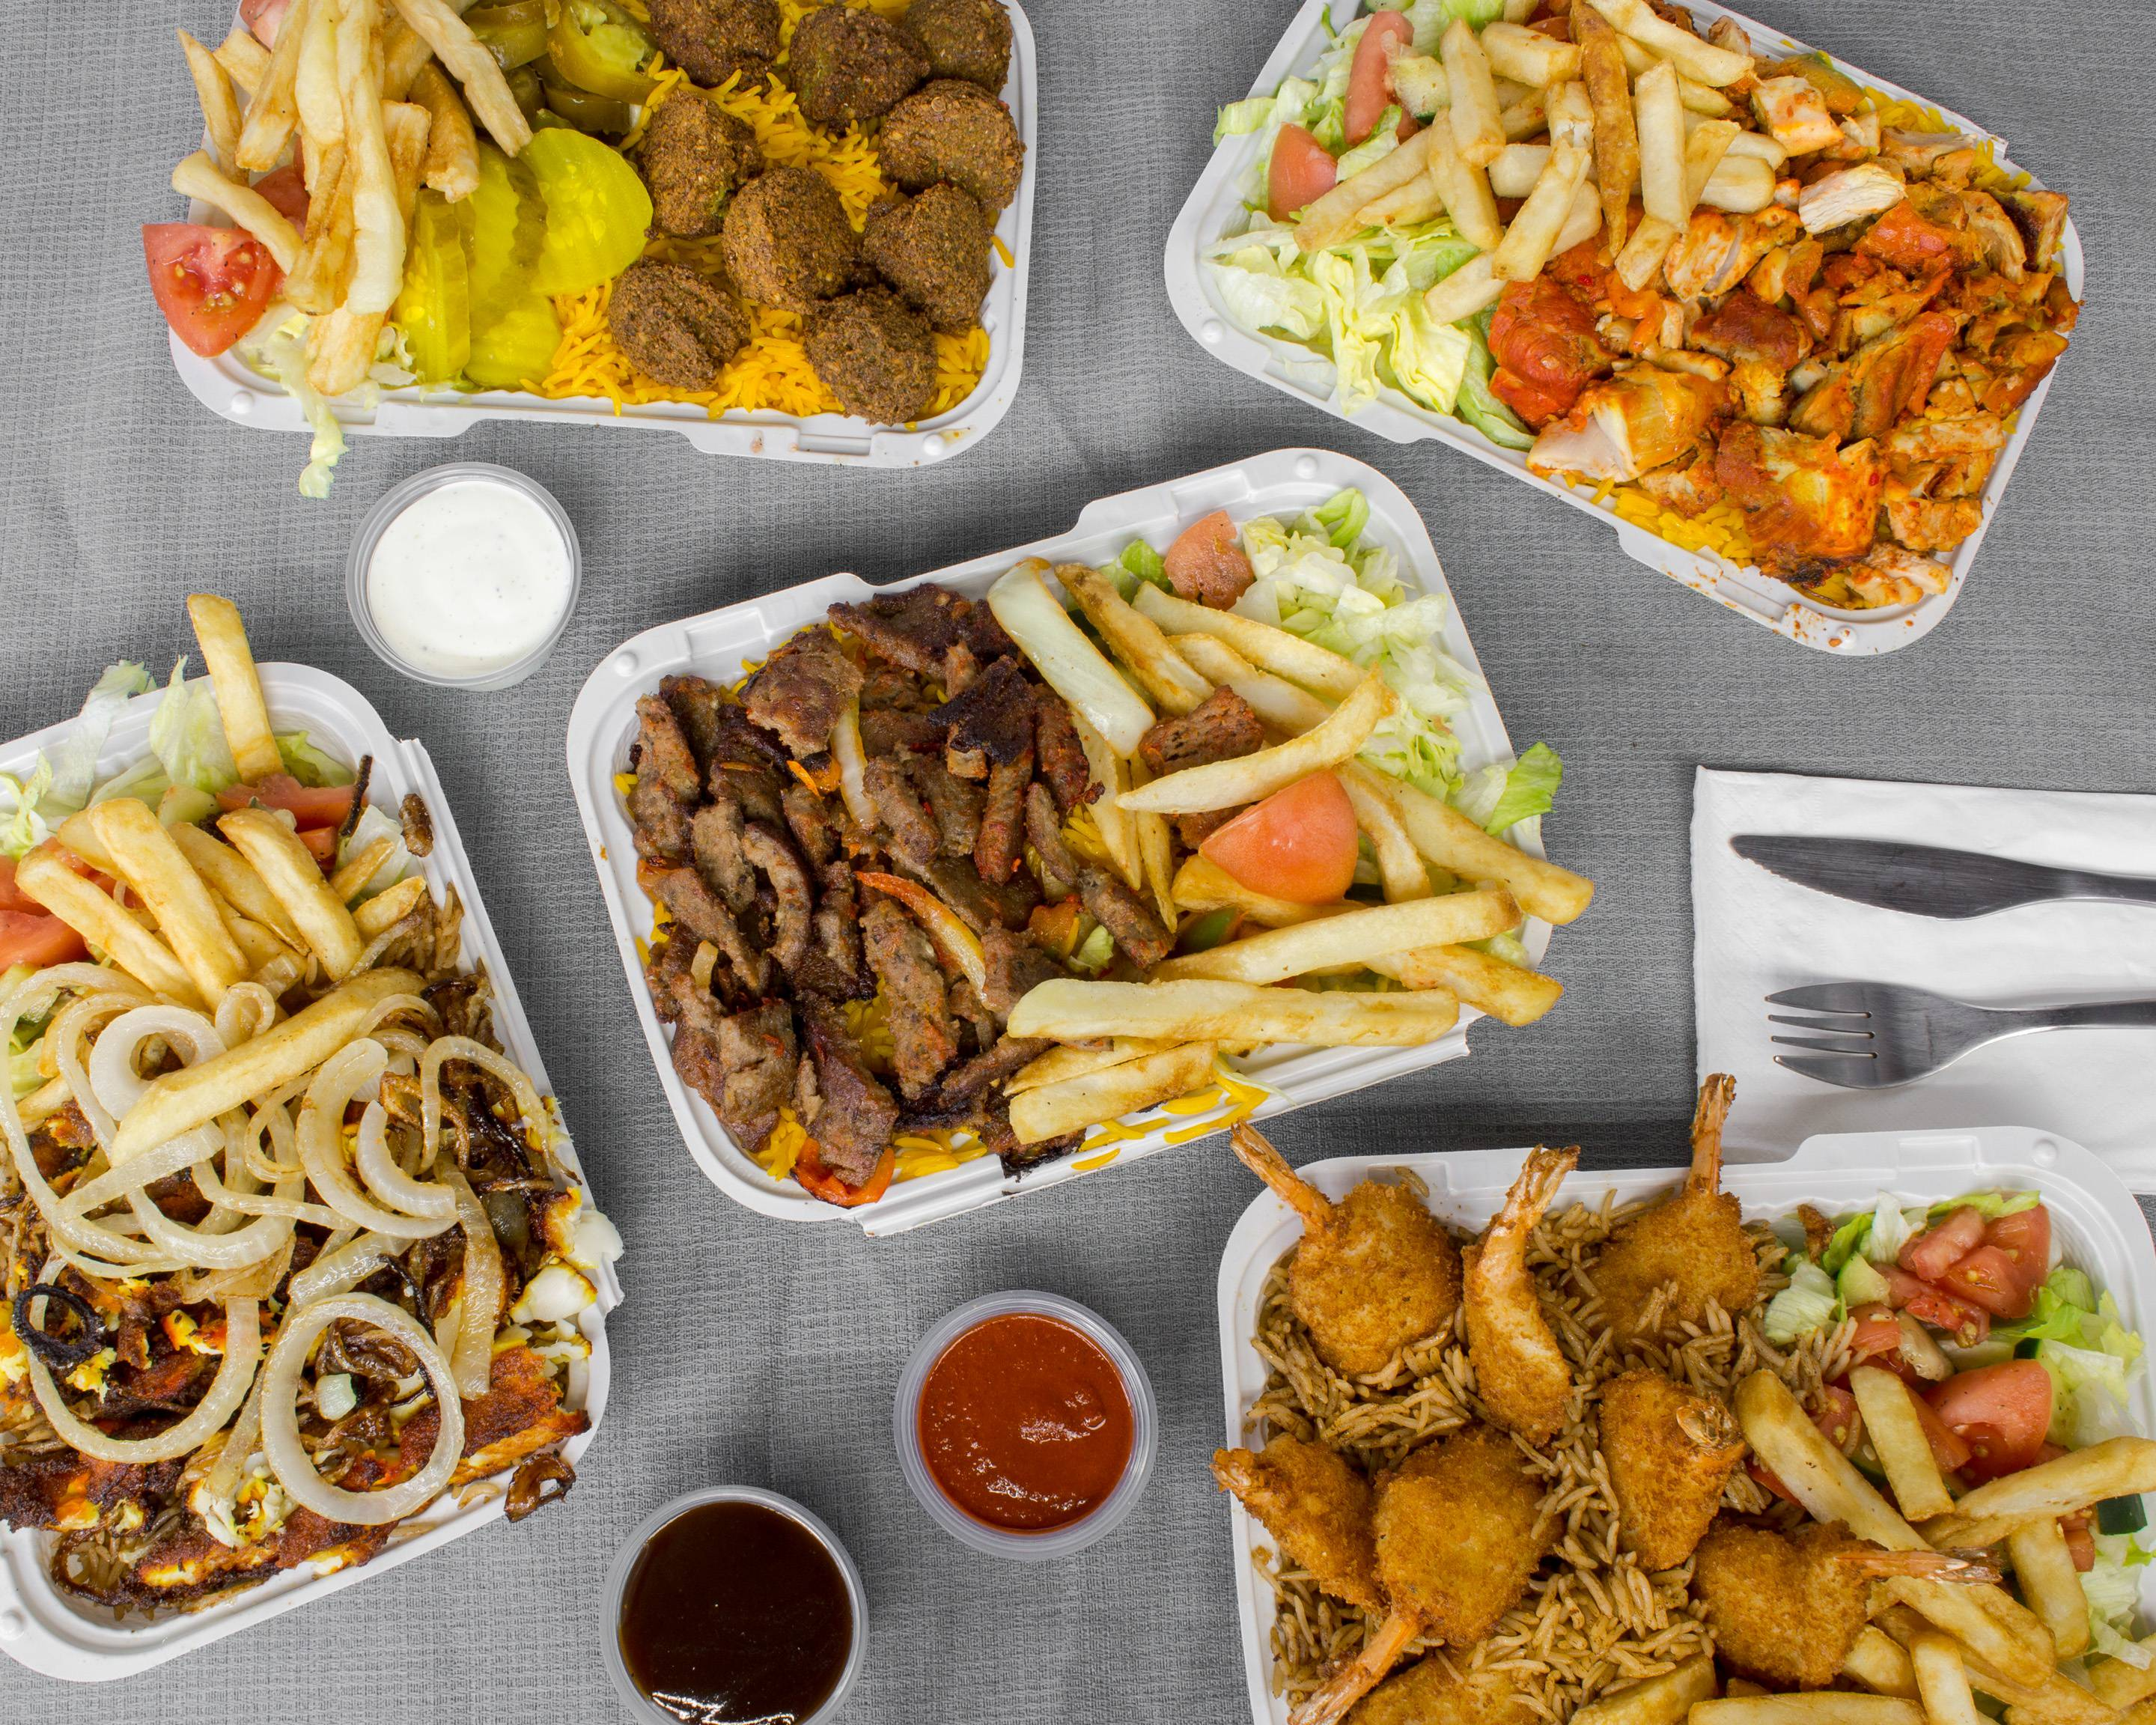 Order 28th Street And Madison Halal Food Truck Delivery Online New York City Menu Prices Uber Eats